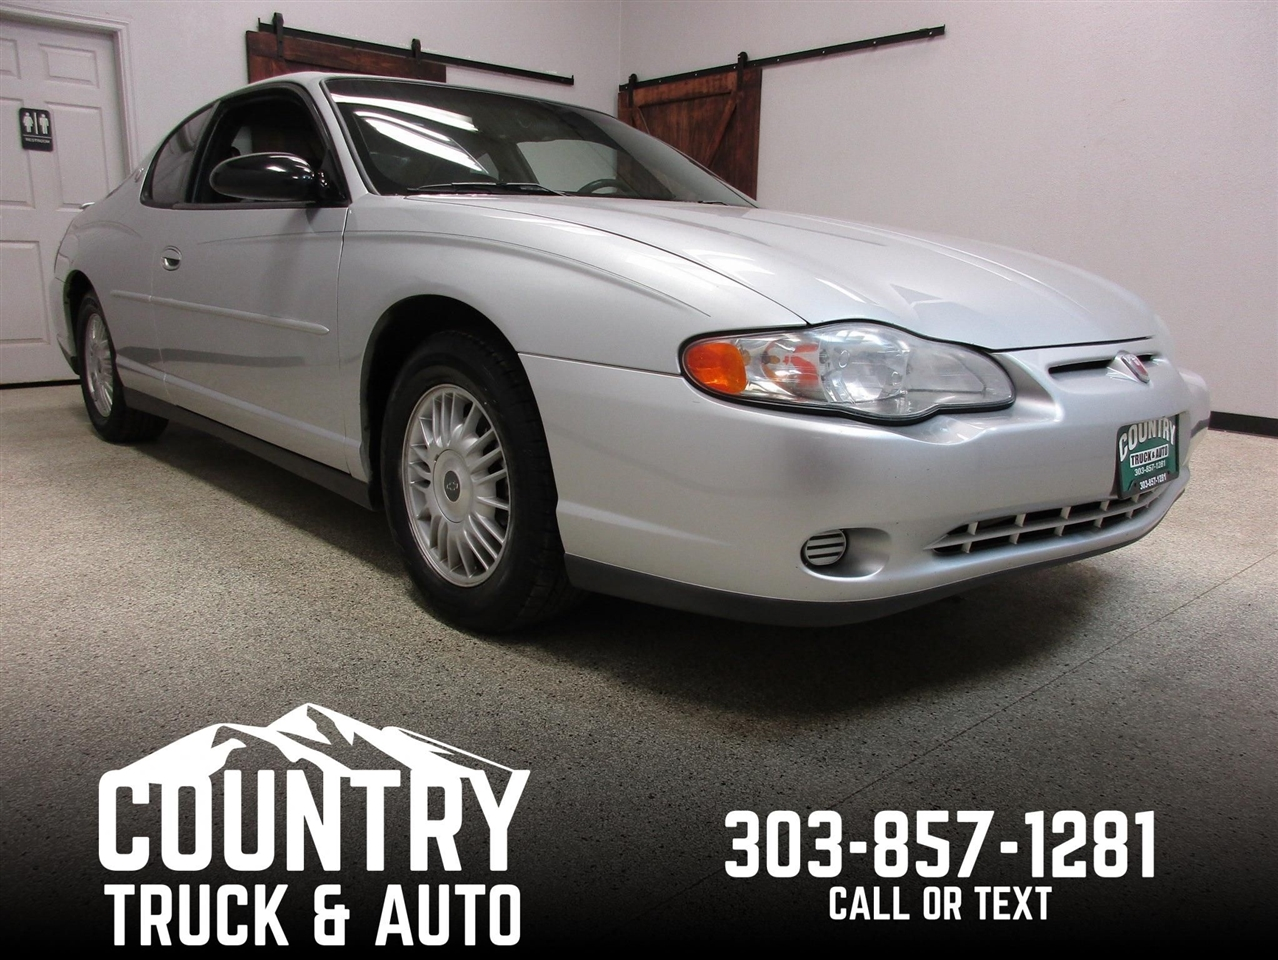 2002 Chevrolet Monte Carlo LS 2 Door Coupe